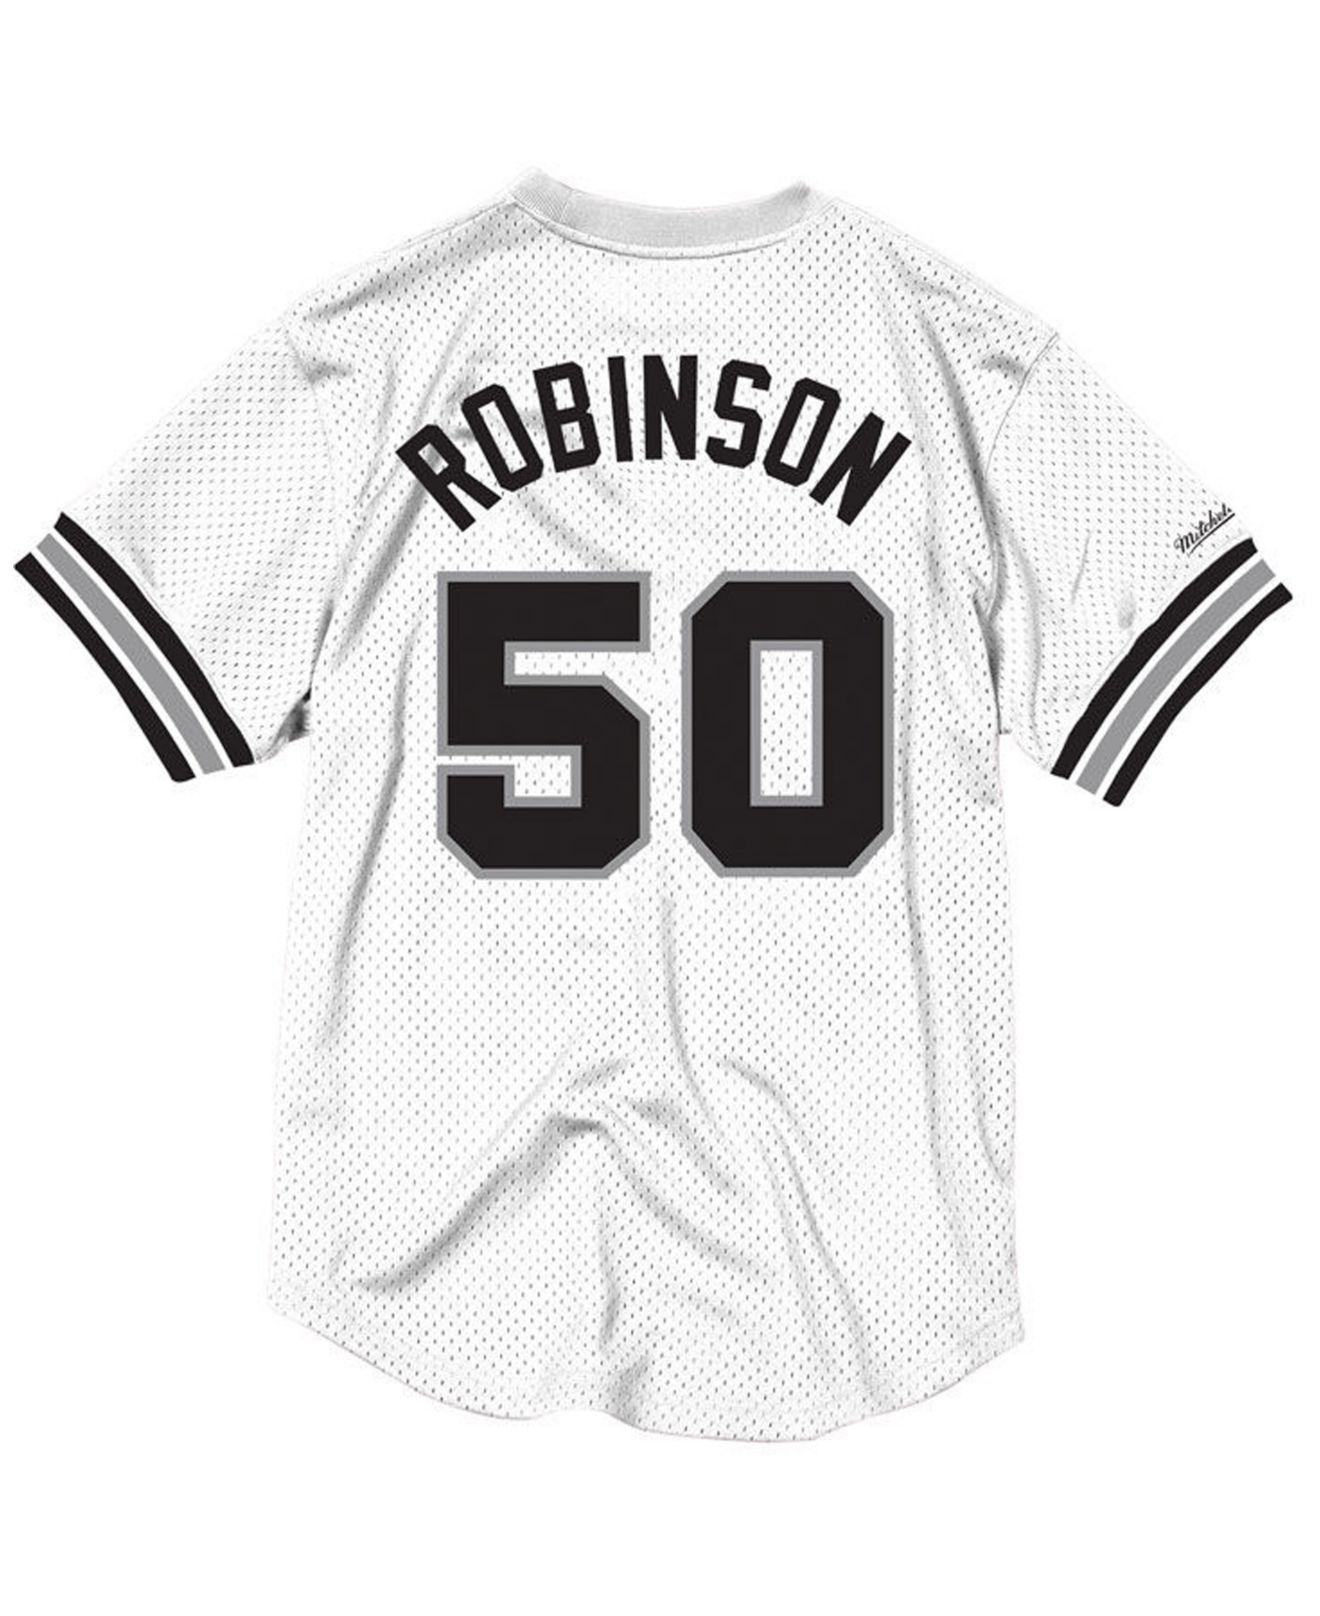 51f295e43871b Mitchell   Ness. Men s White David Robinson San Antonio Spurs Name And  Number Mesh Crewneck Jersey